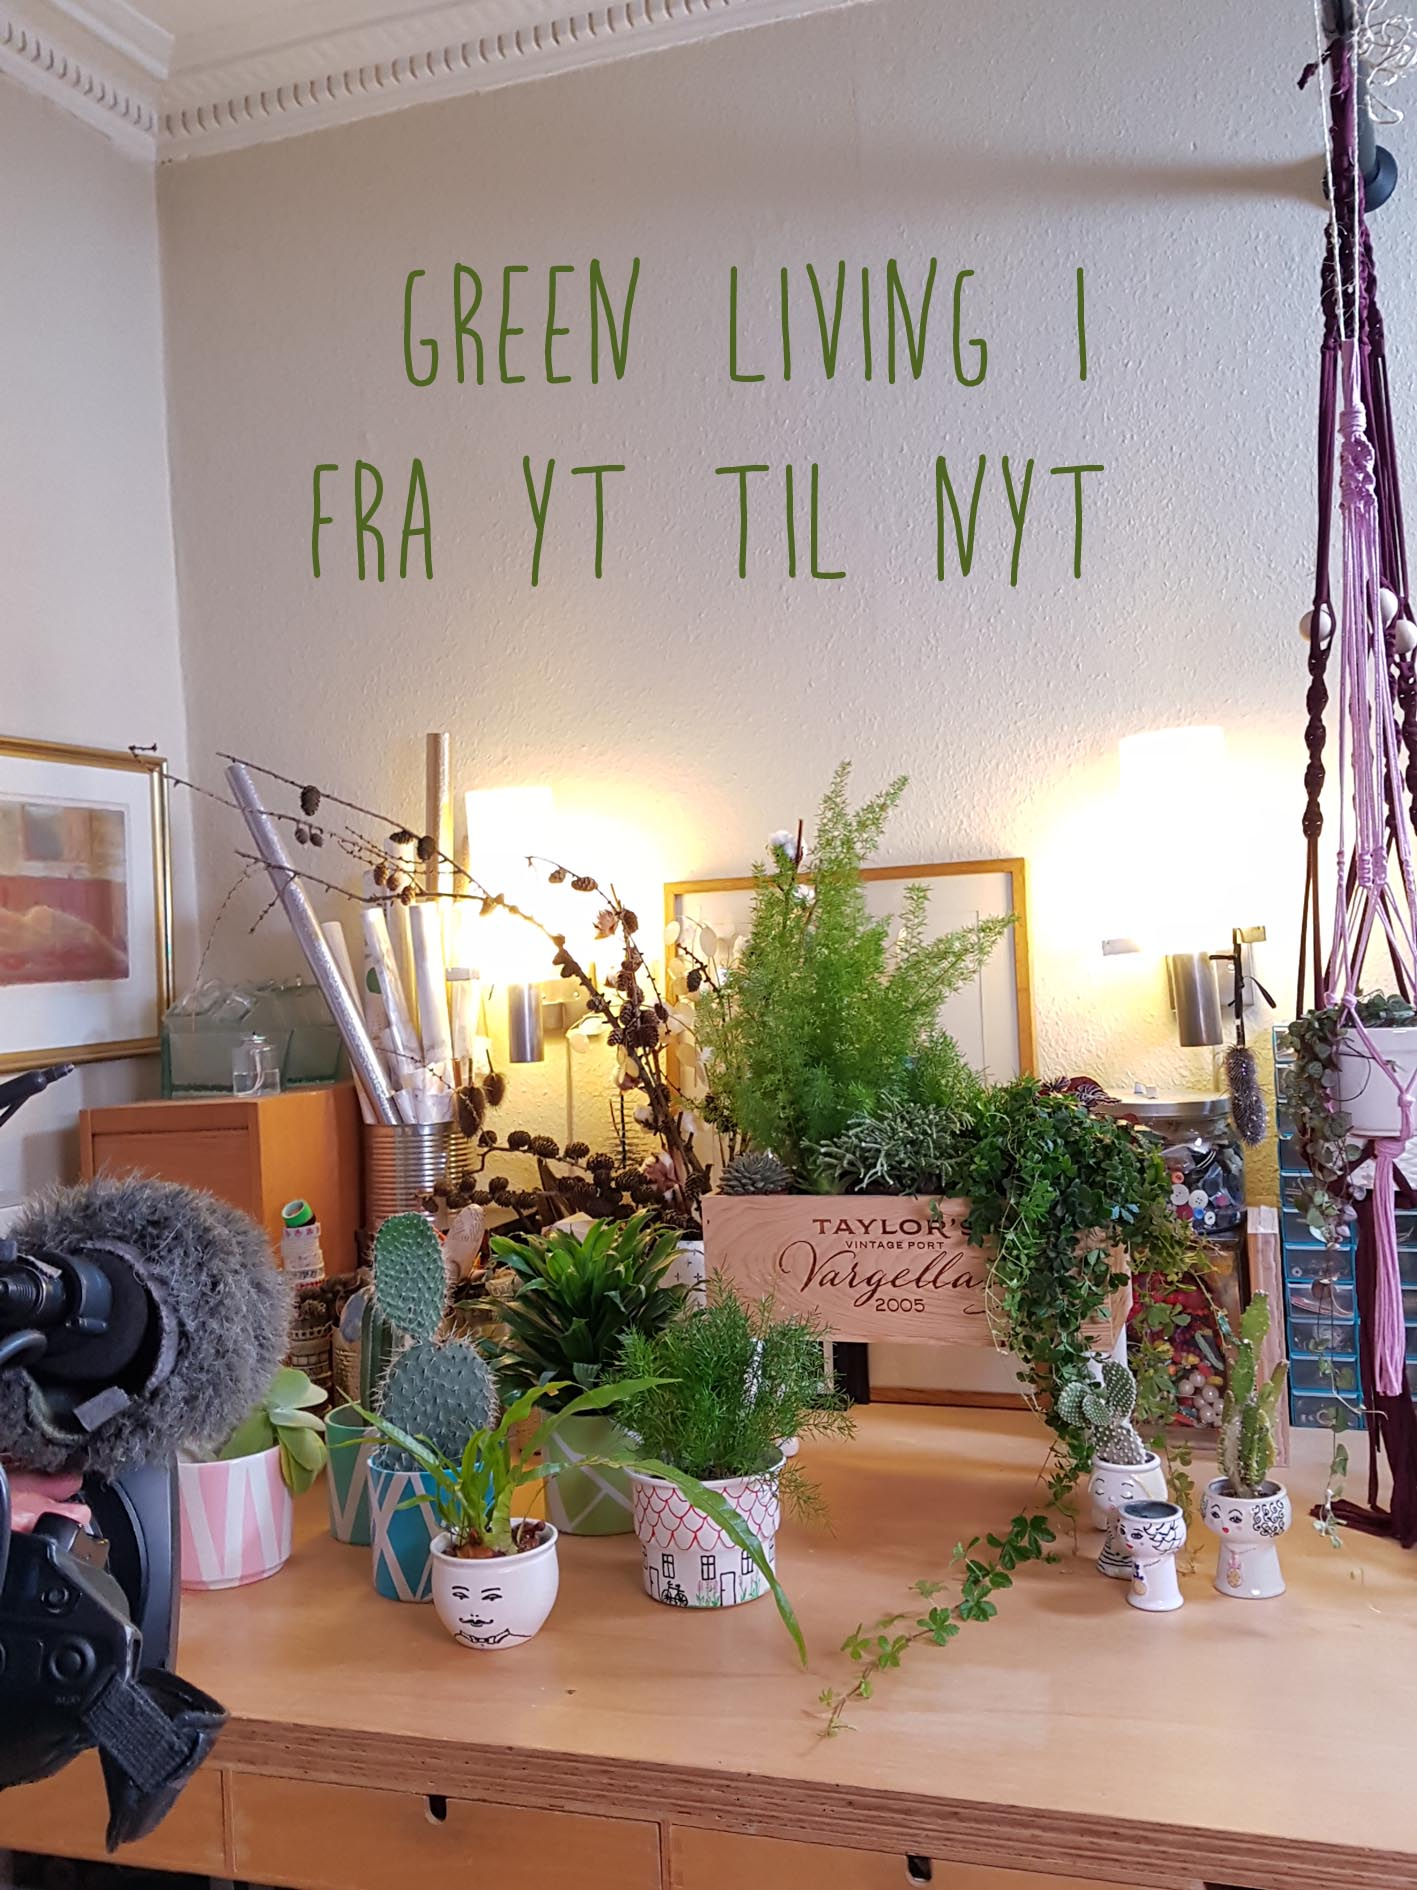 green living, I'm showing how to upcycle your old pots and wineboxes to become plant containers.